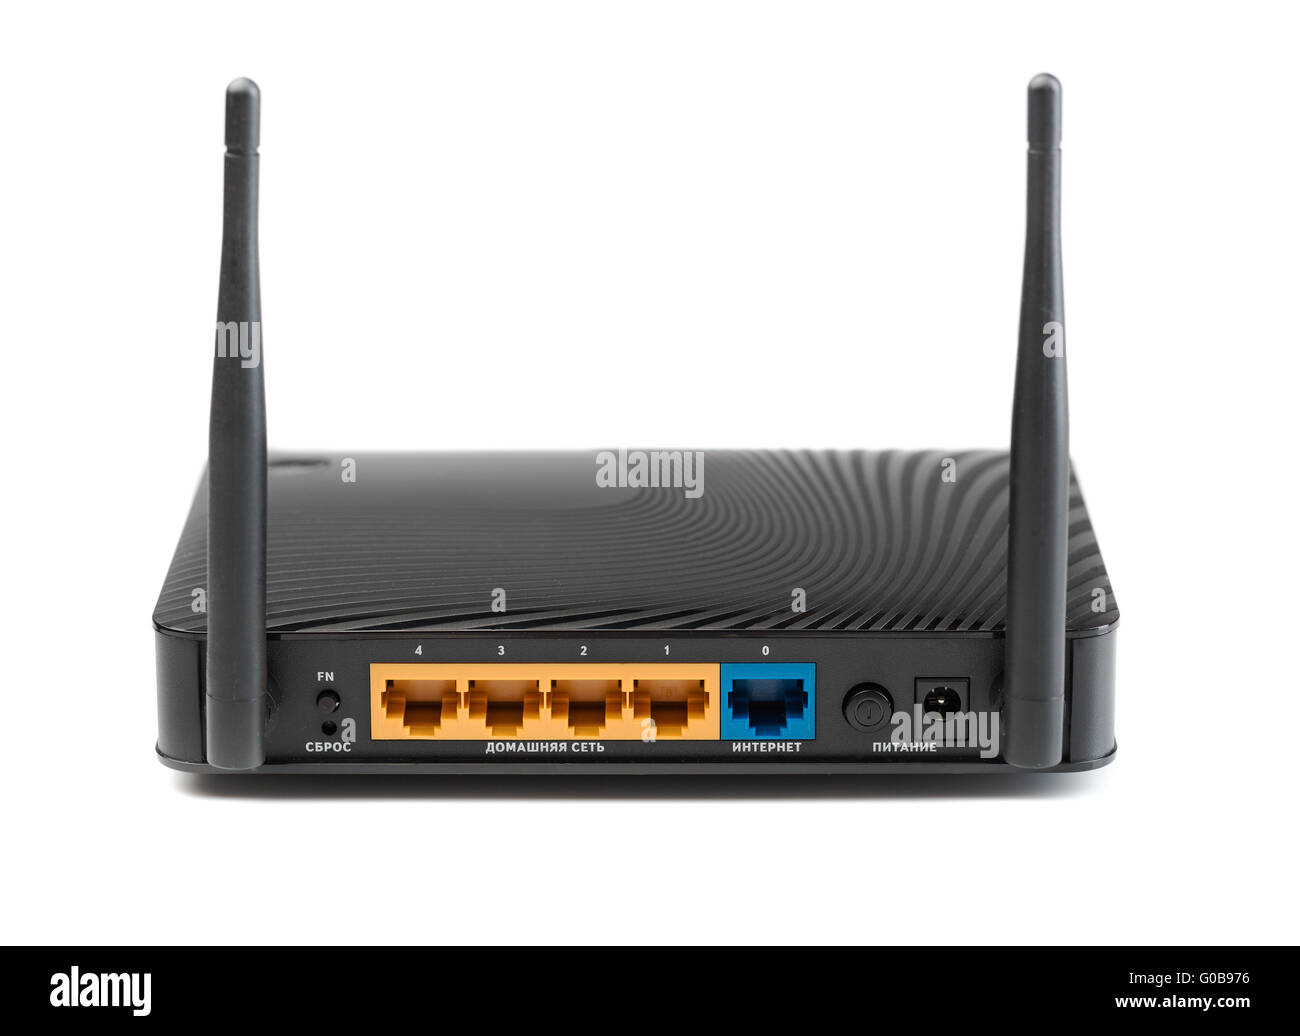 Wireless router for internet connections. The view from the rear side - Stock Image